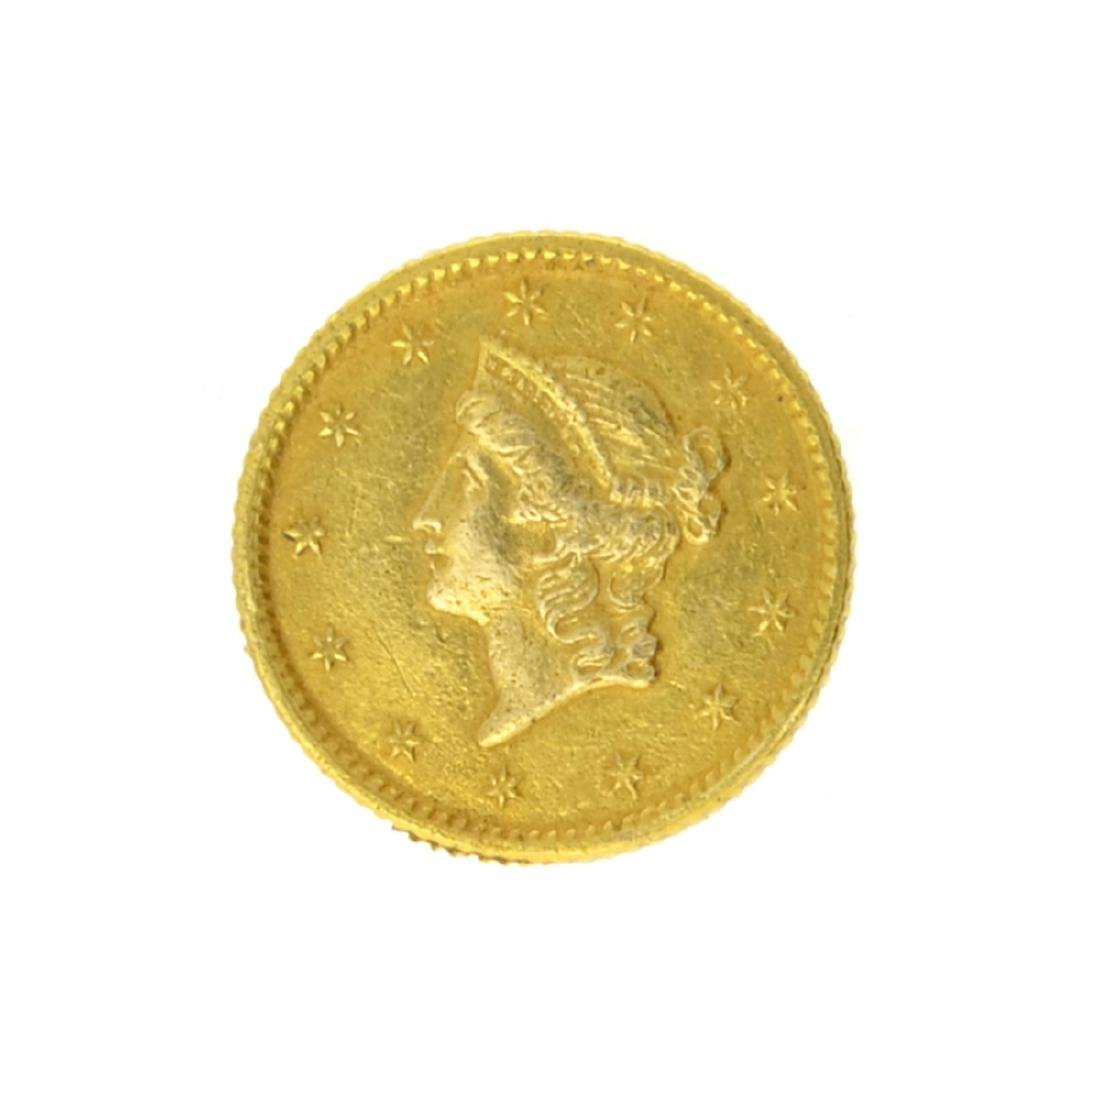 1853 $1 Liberty Head Gold Coin